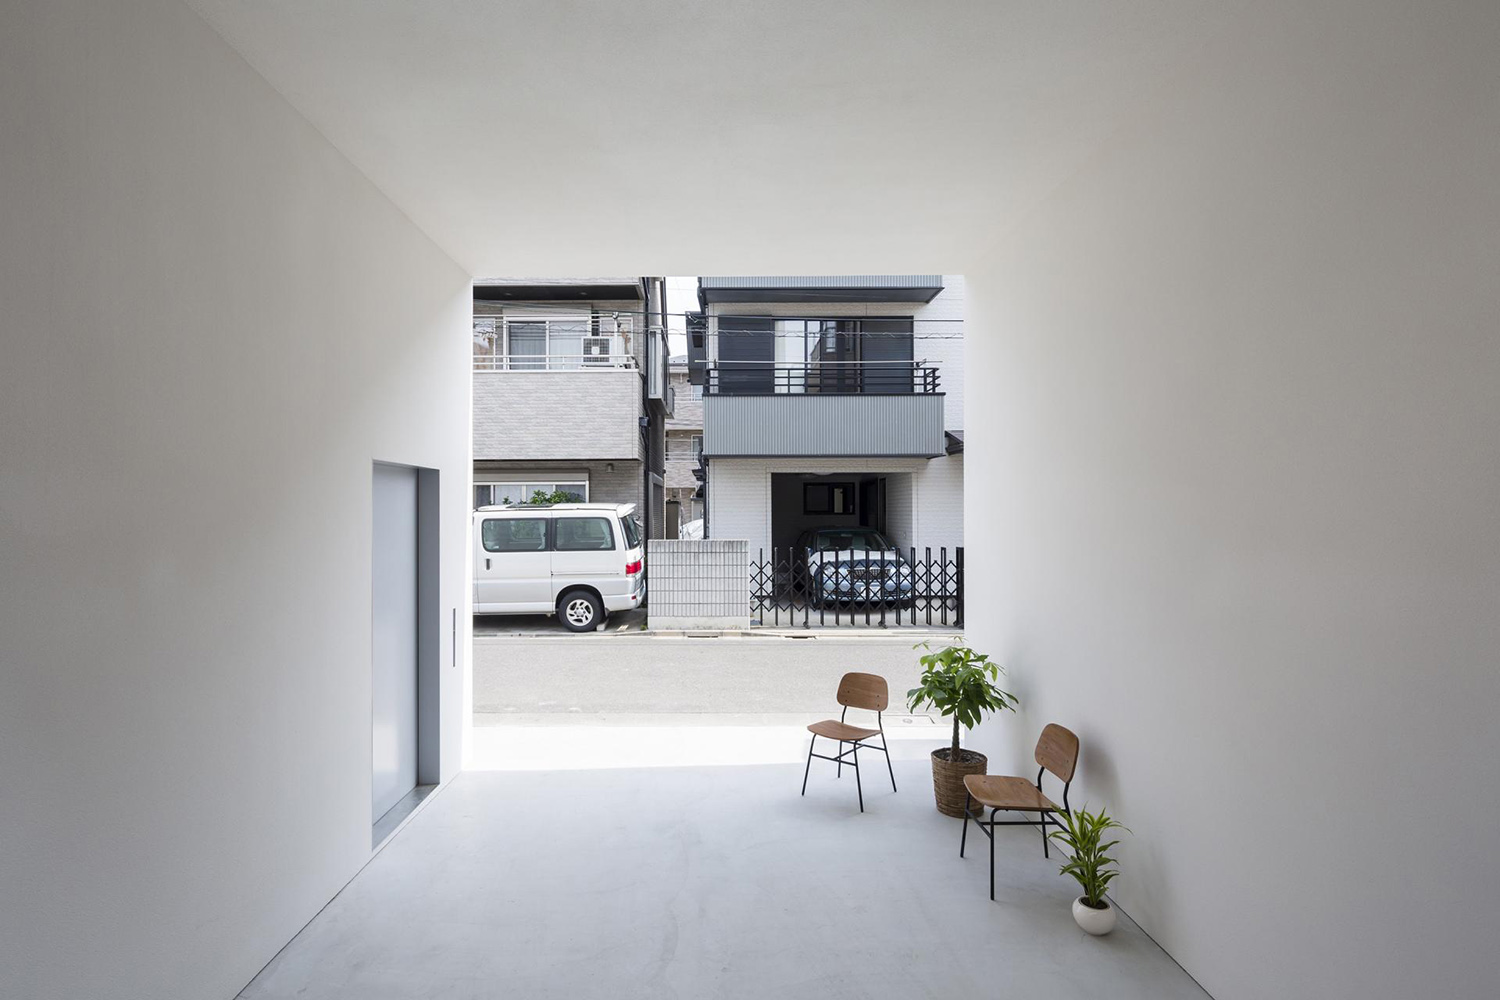 Little house with a big terrace by takuro yamamoto hypebeast for Interieur yeezy